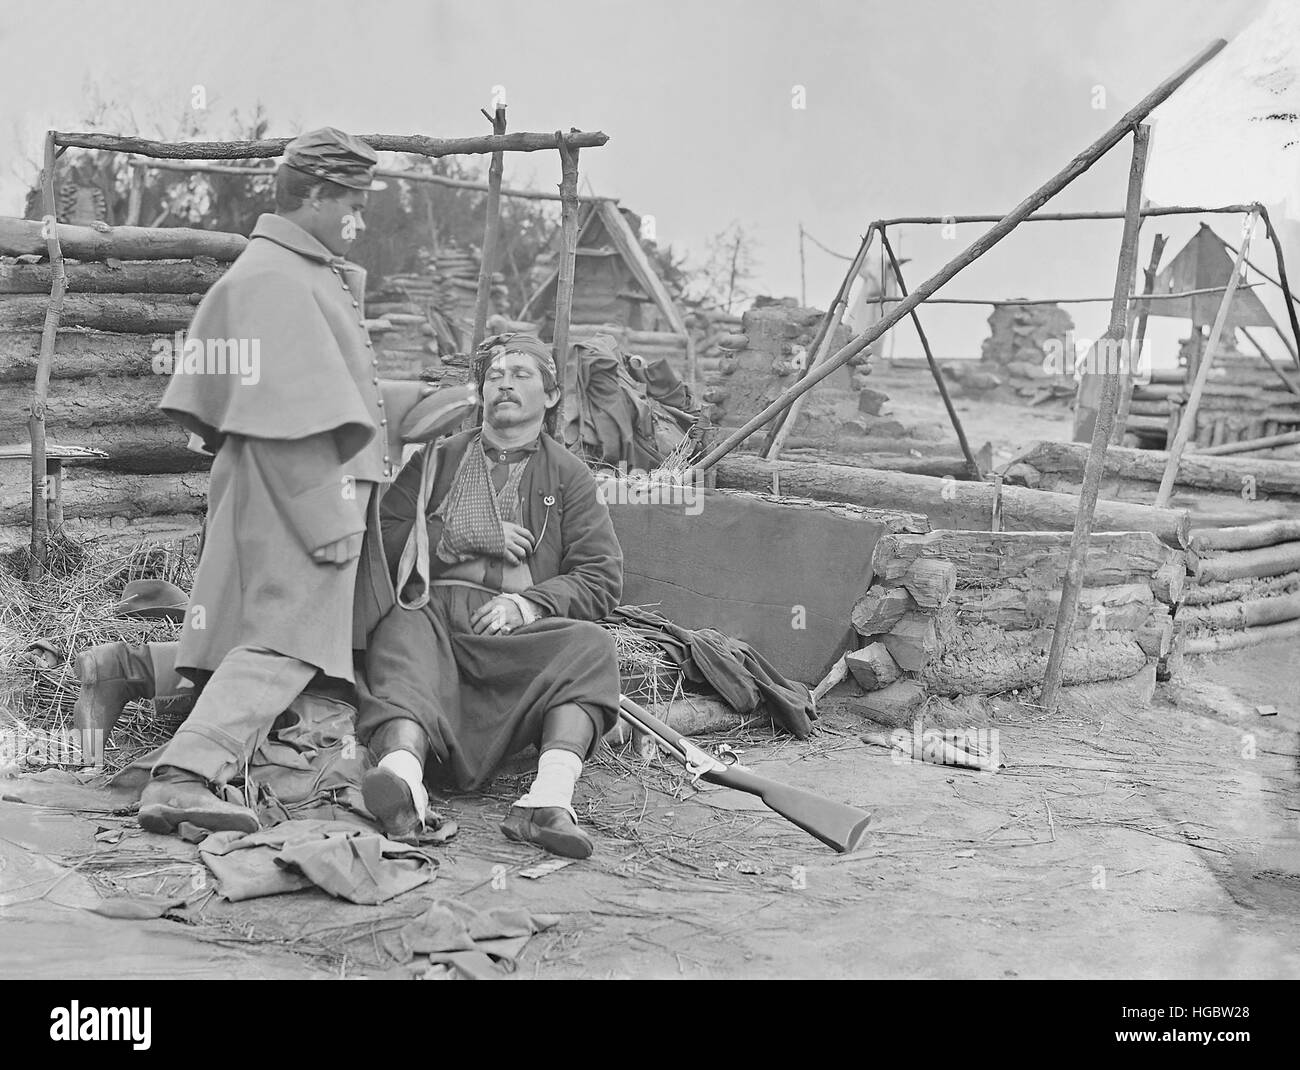 American Civil War scene of a deserted camp and wounded Zouave soldier. - Stock Image